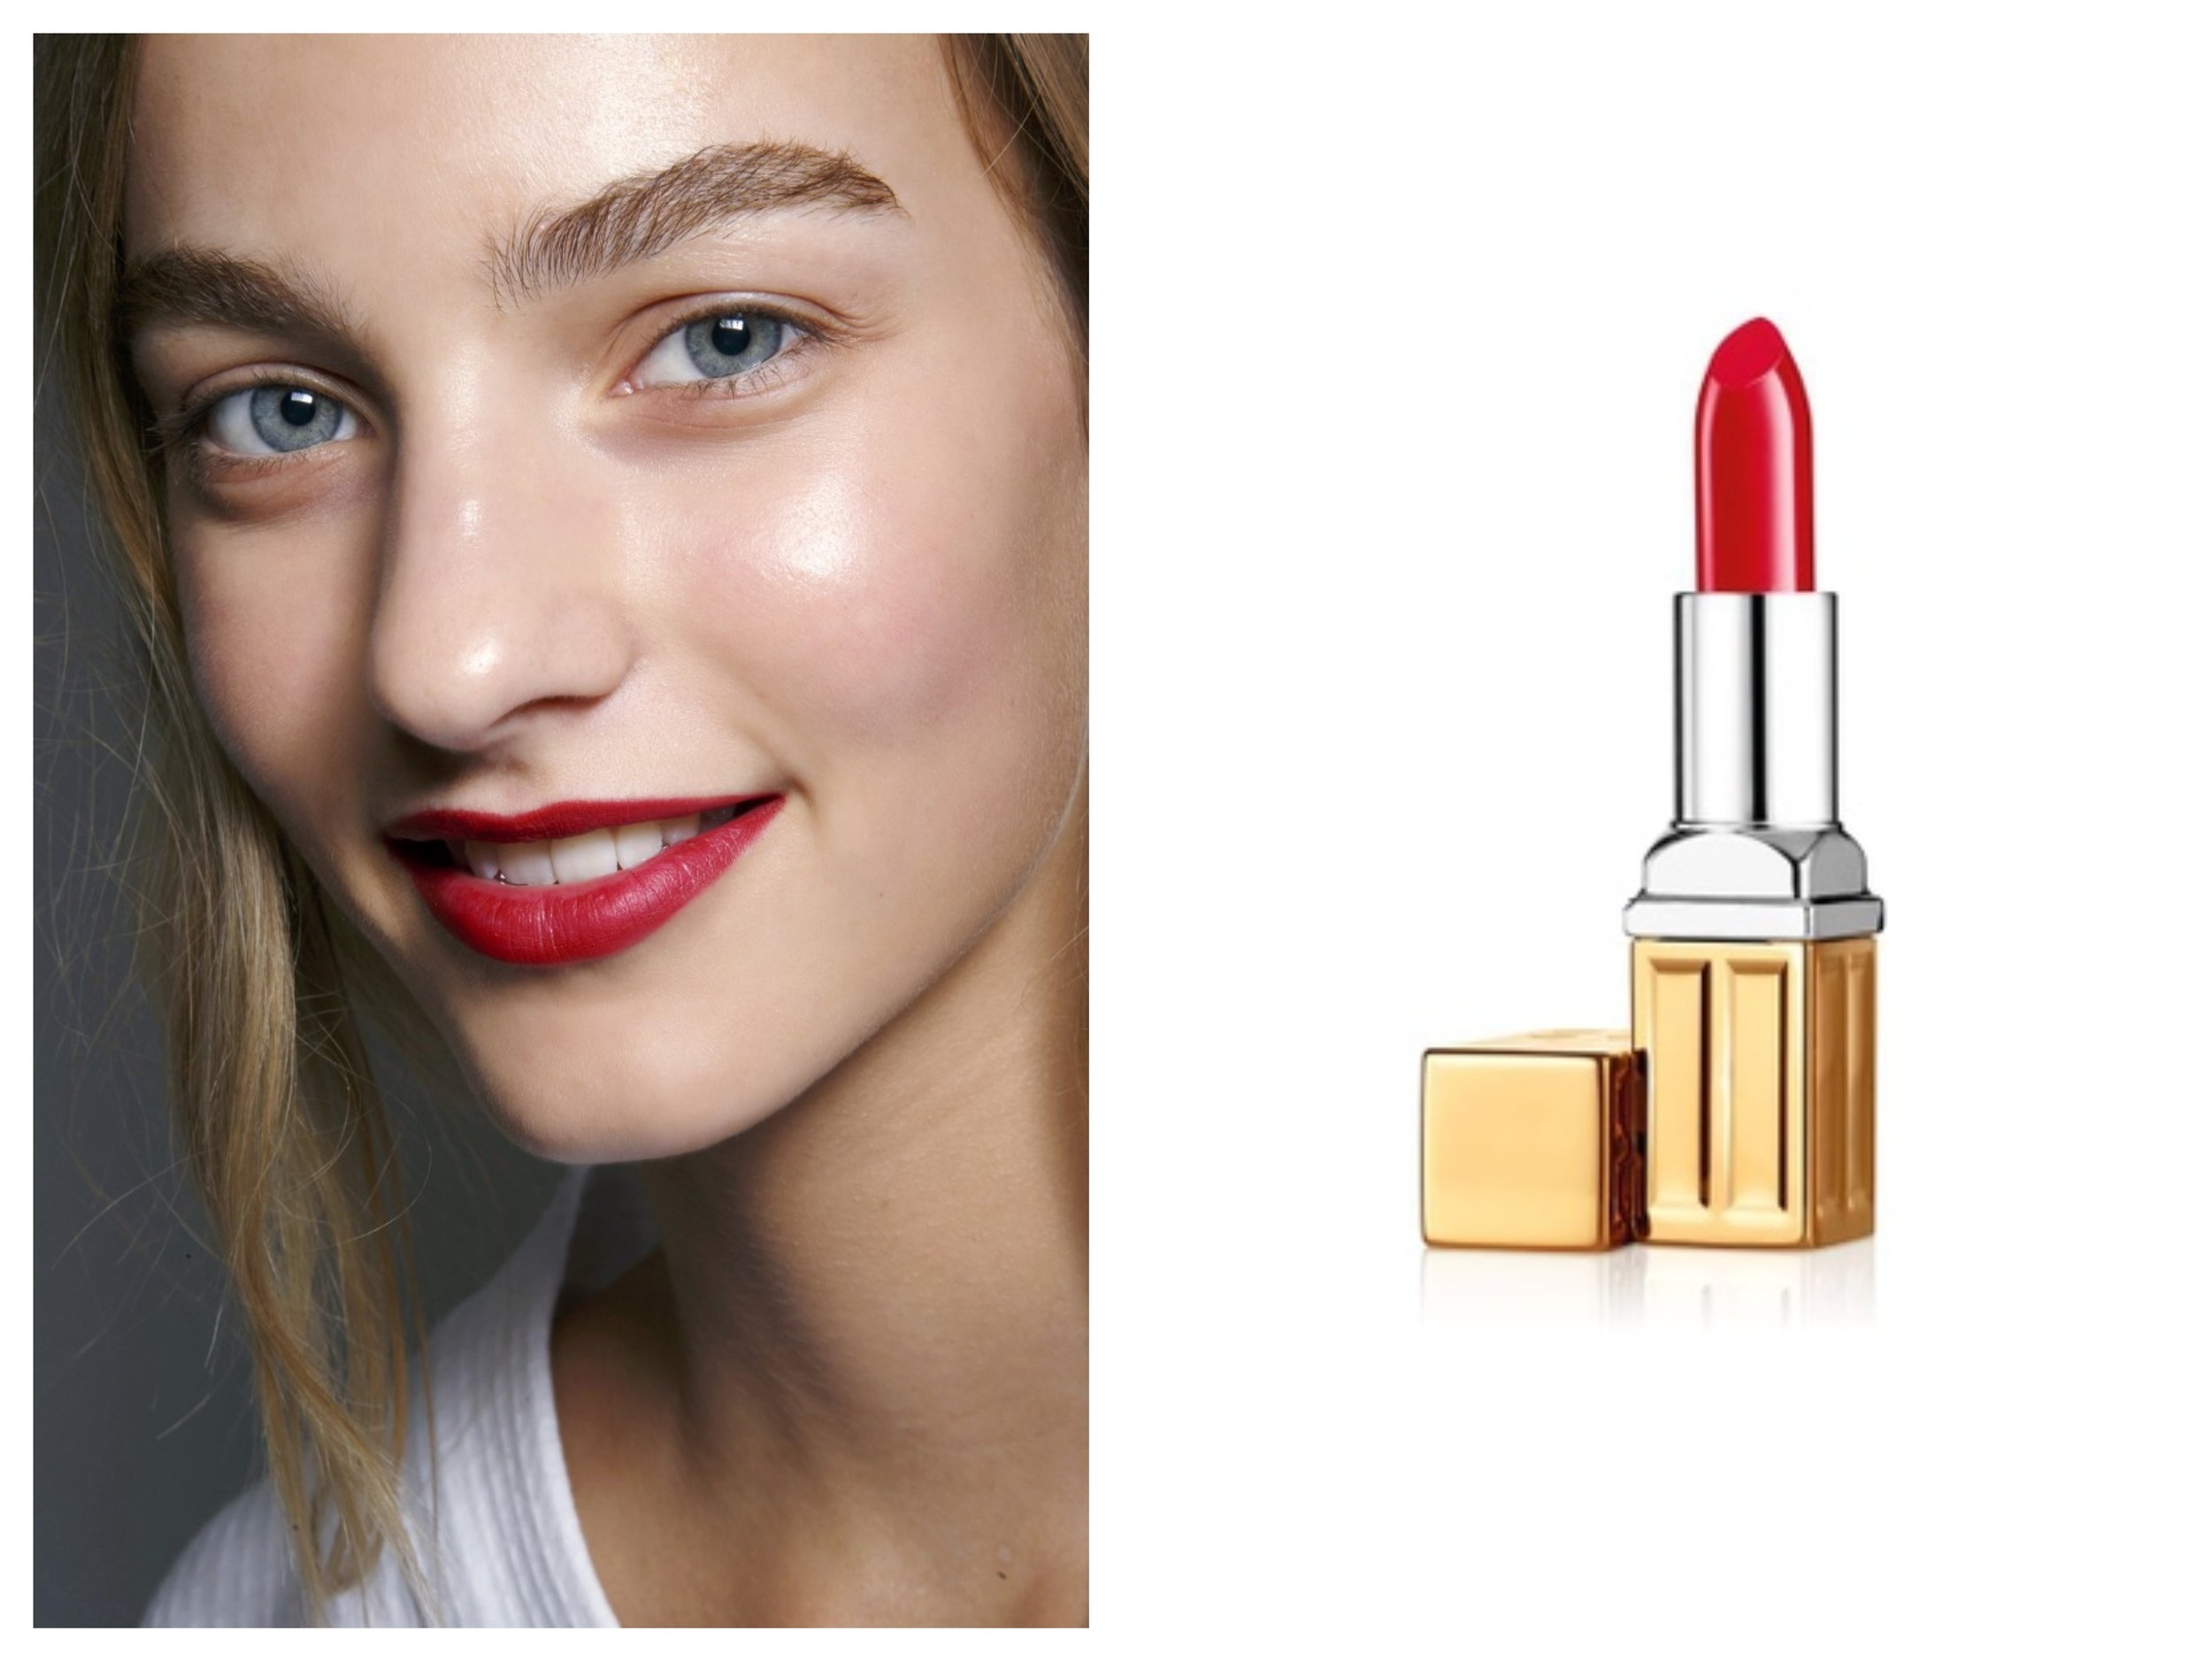 Elizabeth Arden Lipstick Beautiful Color Moisturizing - My Red Door